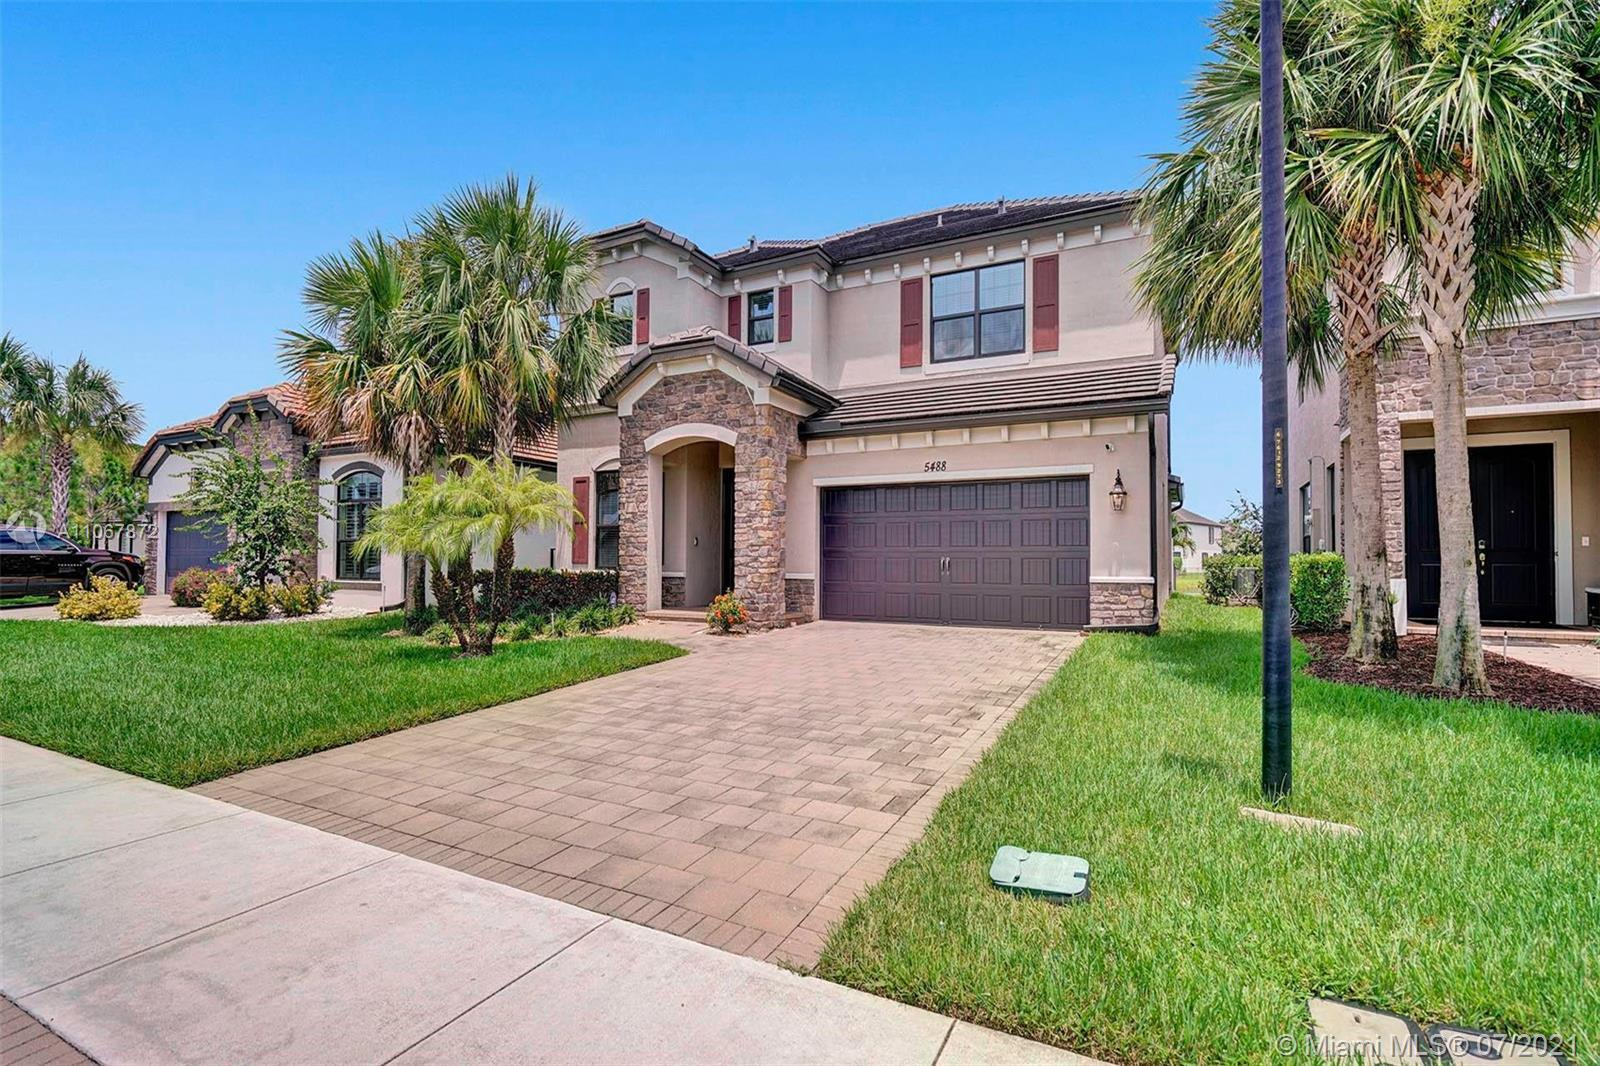 Amazing Home with 4 bedrooms and large loft/den or game room area, 3.5 baths, 2 car garage with a la